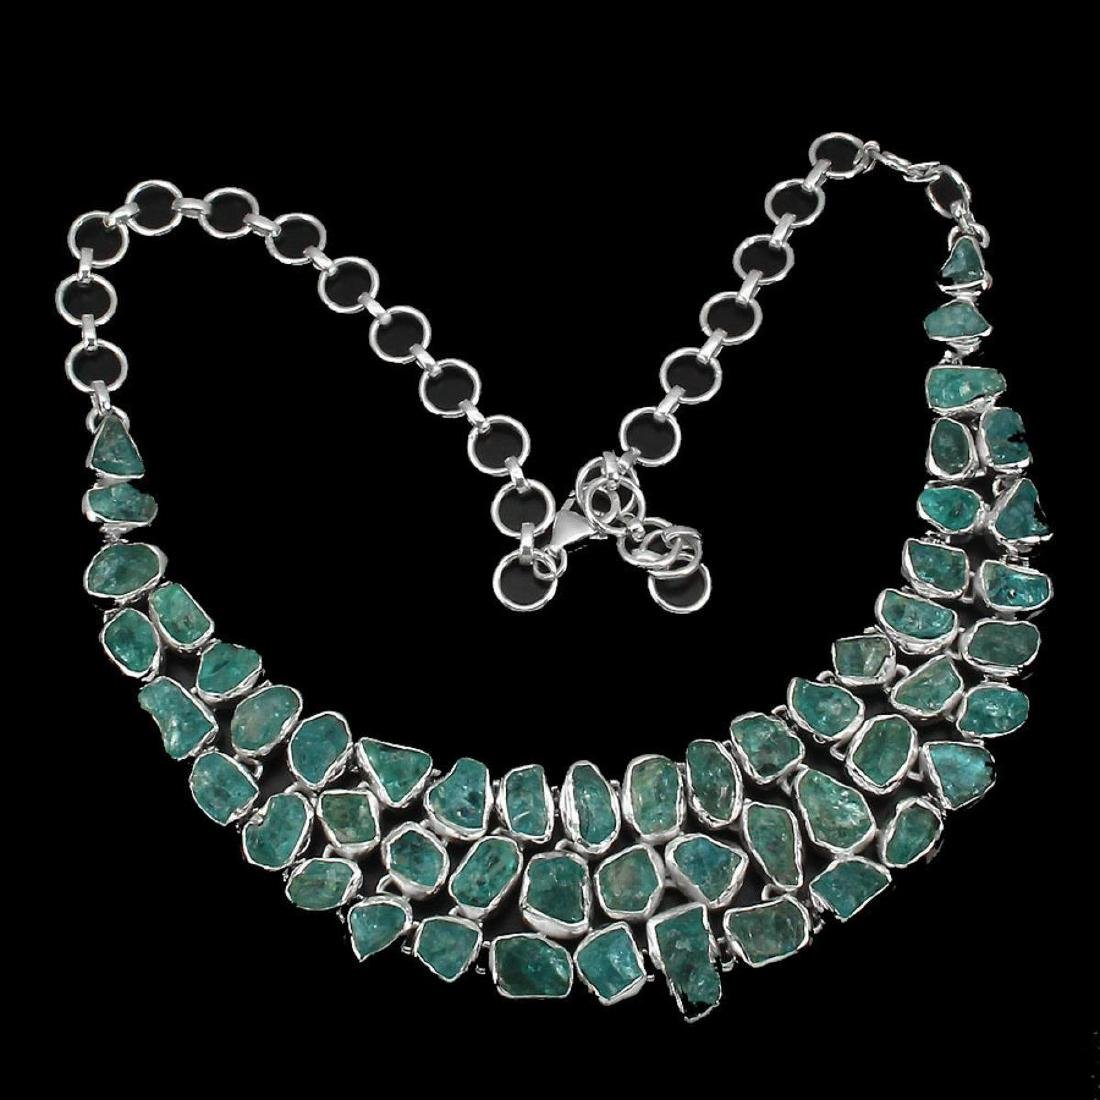 Natural Neon Blue Apatite Rough 367 Cts Necklace - 3